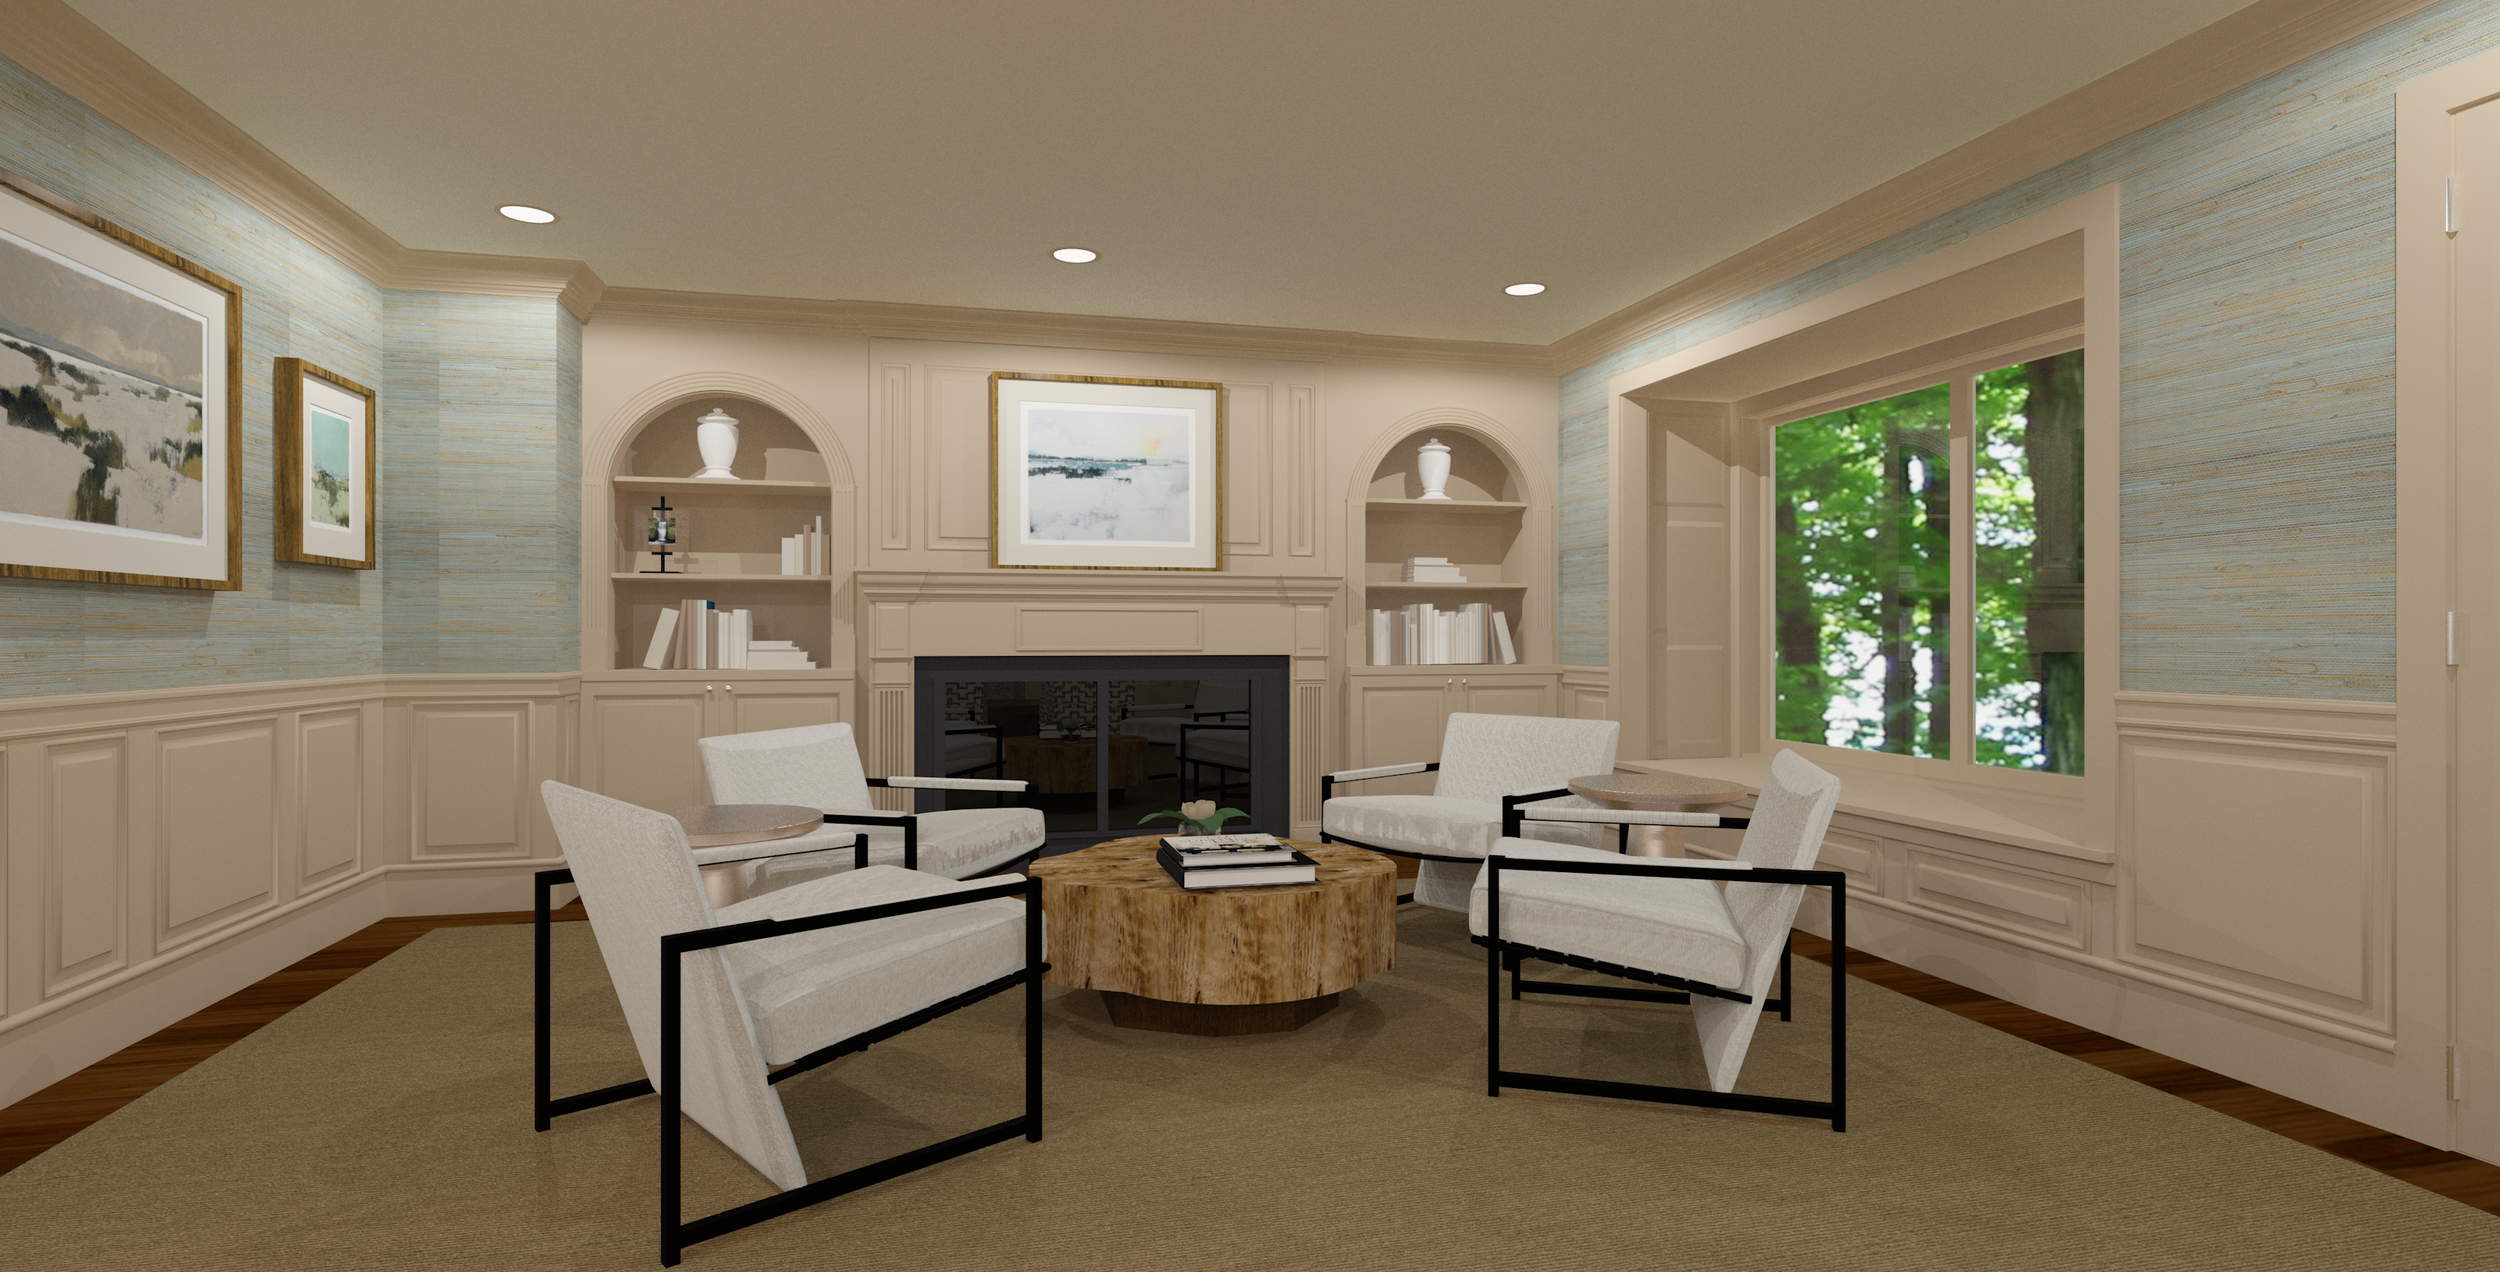 Sitting Area Rendering | Designed by Anne Carr Designs.png